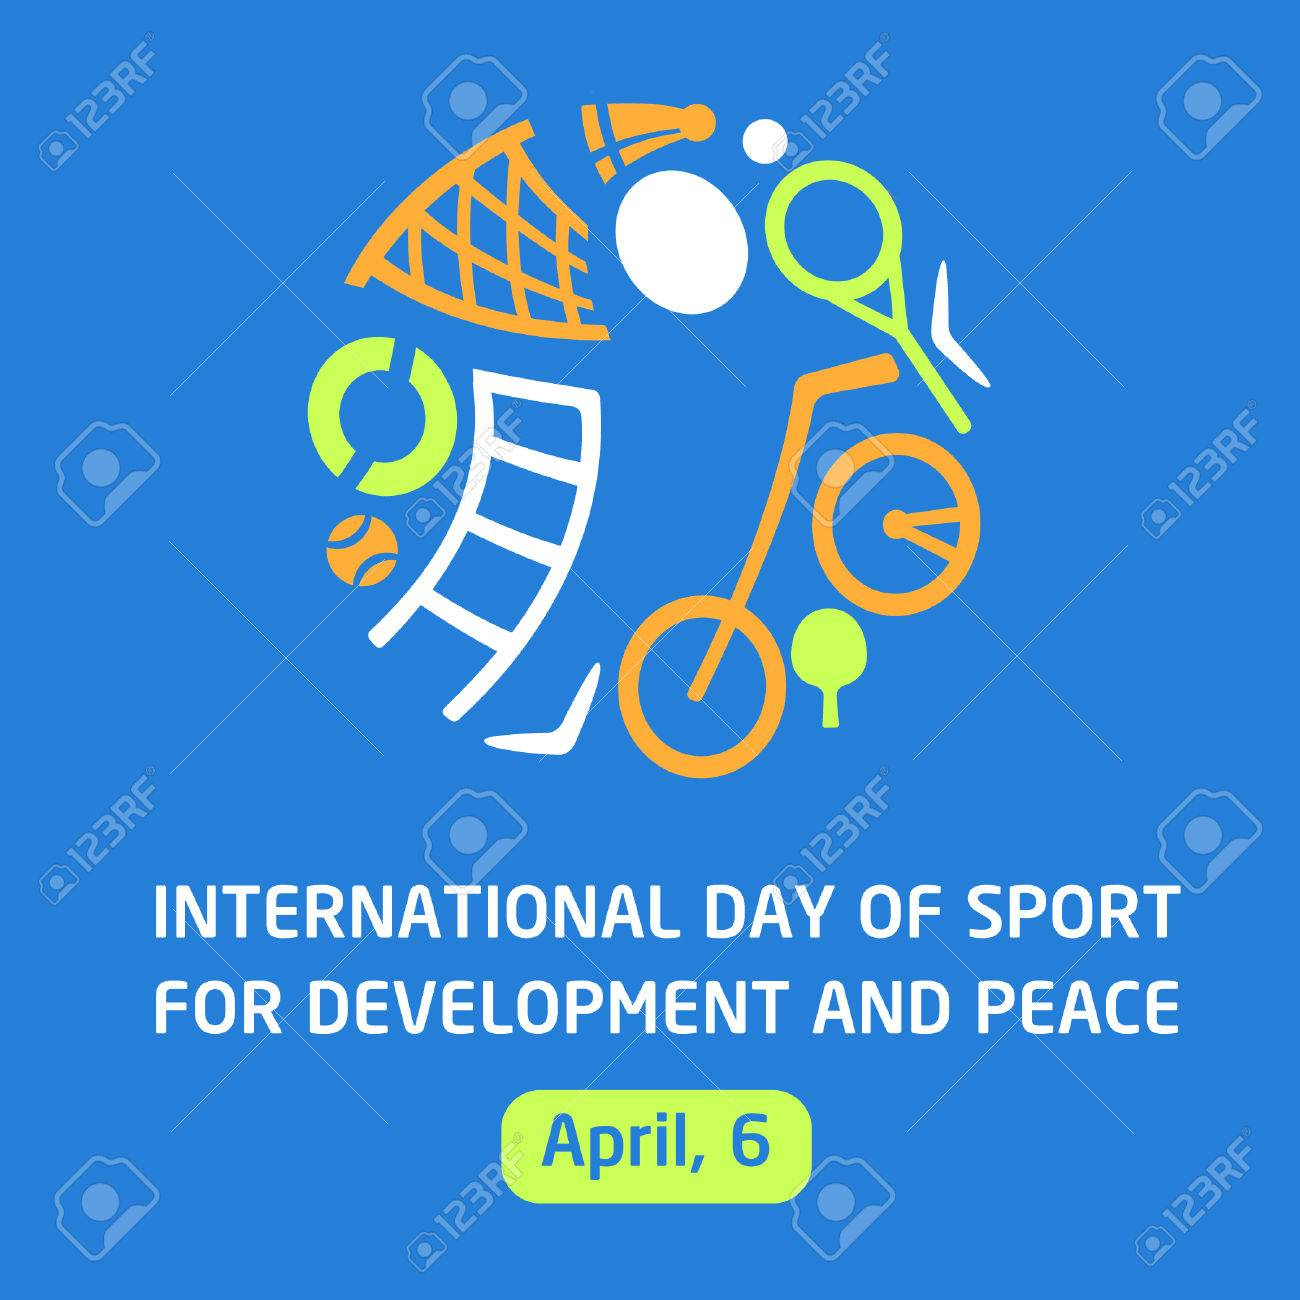 Vector logo for childrens sports school, club, shop for sports, competition sports. Silhouettes of a man sporting equipment. Various sports. International day of sport for development and peace. The symbolism, conceptual and brevity. - 54362170